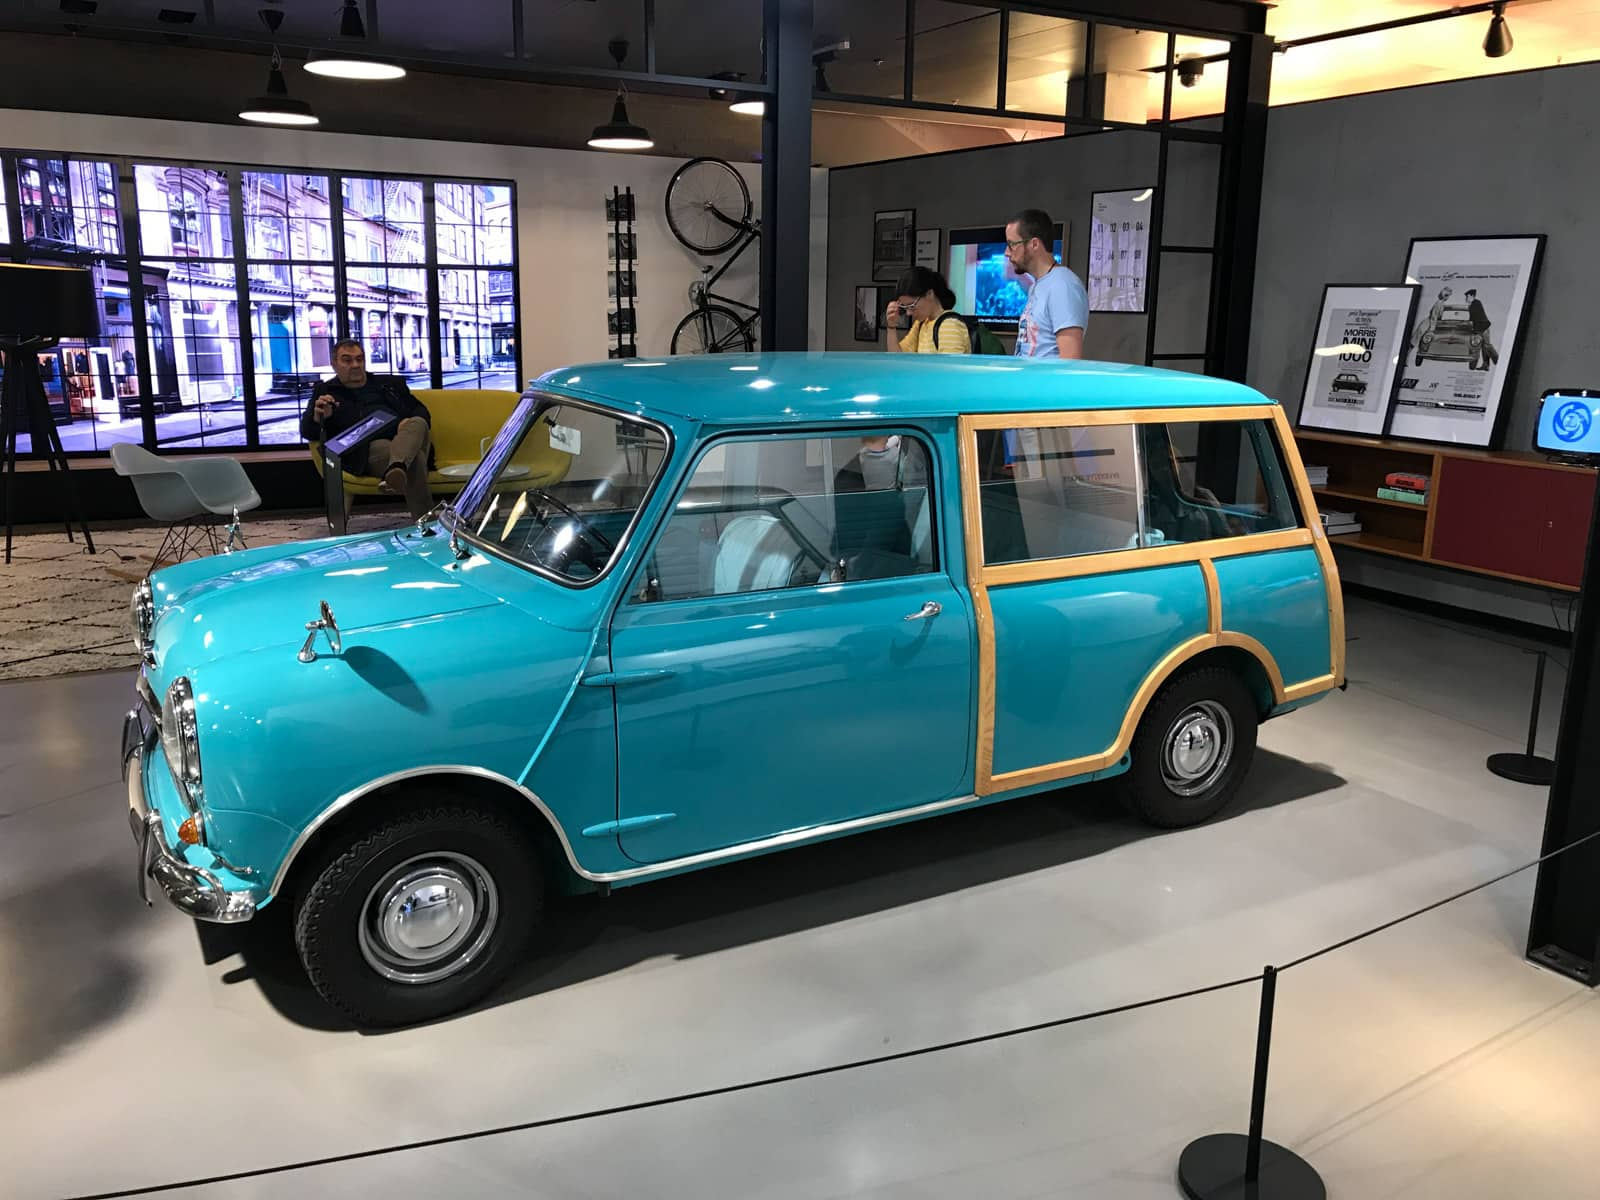 A small light cobalt blue coloured car being showcased indoors